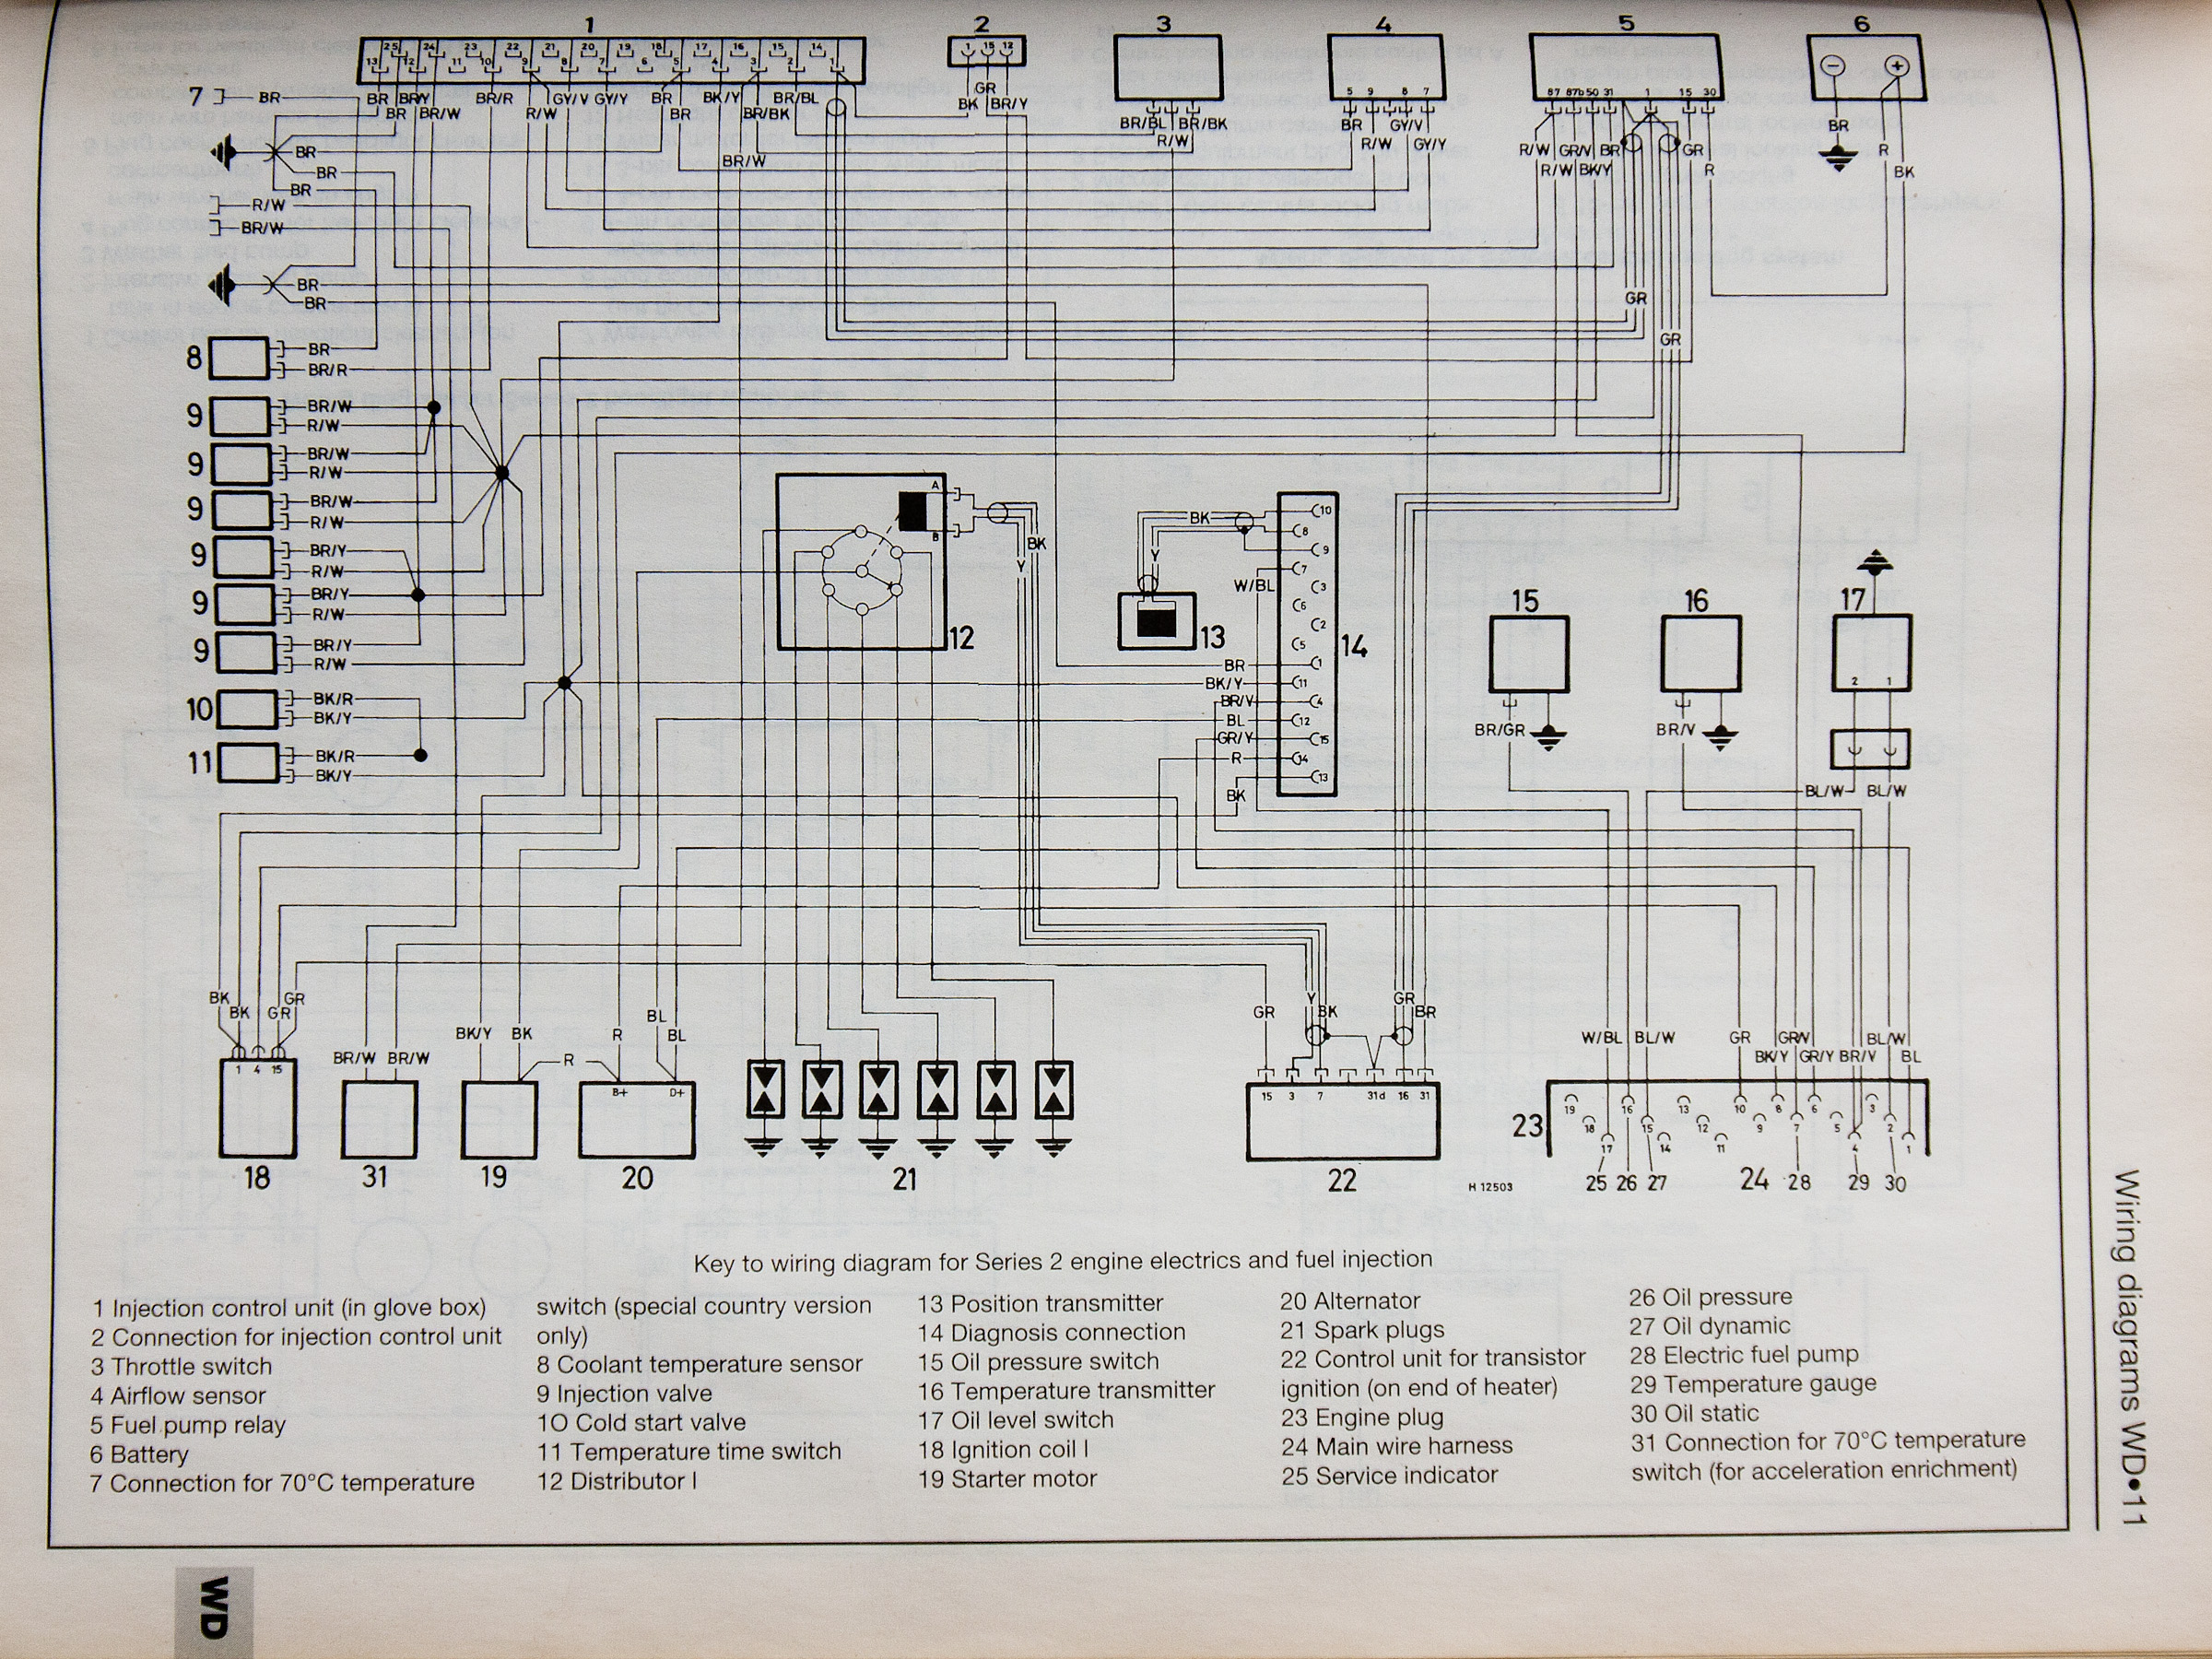 A Typical L-jetronic Wiring Diagram  Taken From  U0026quot Haynes - Bmw 320  320i  323i  325i